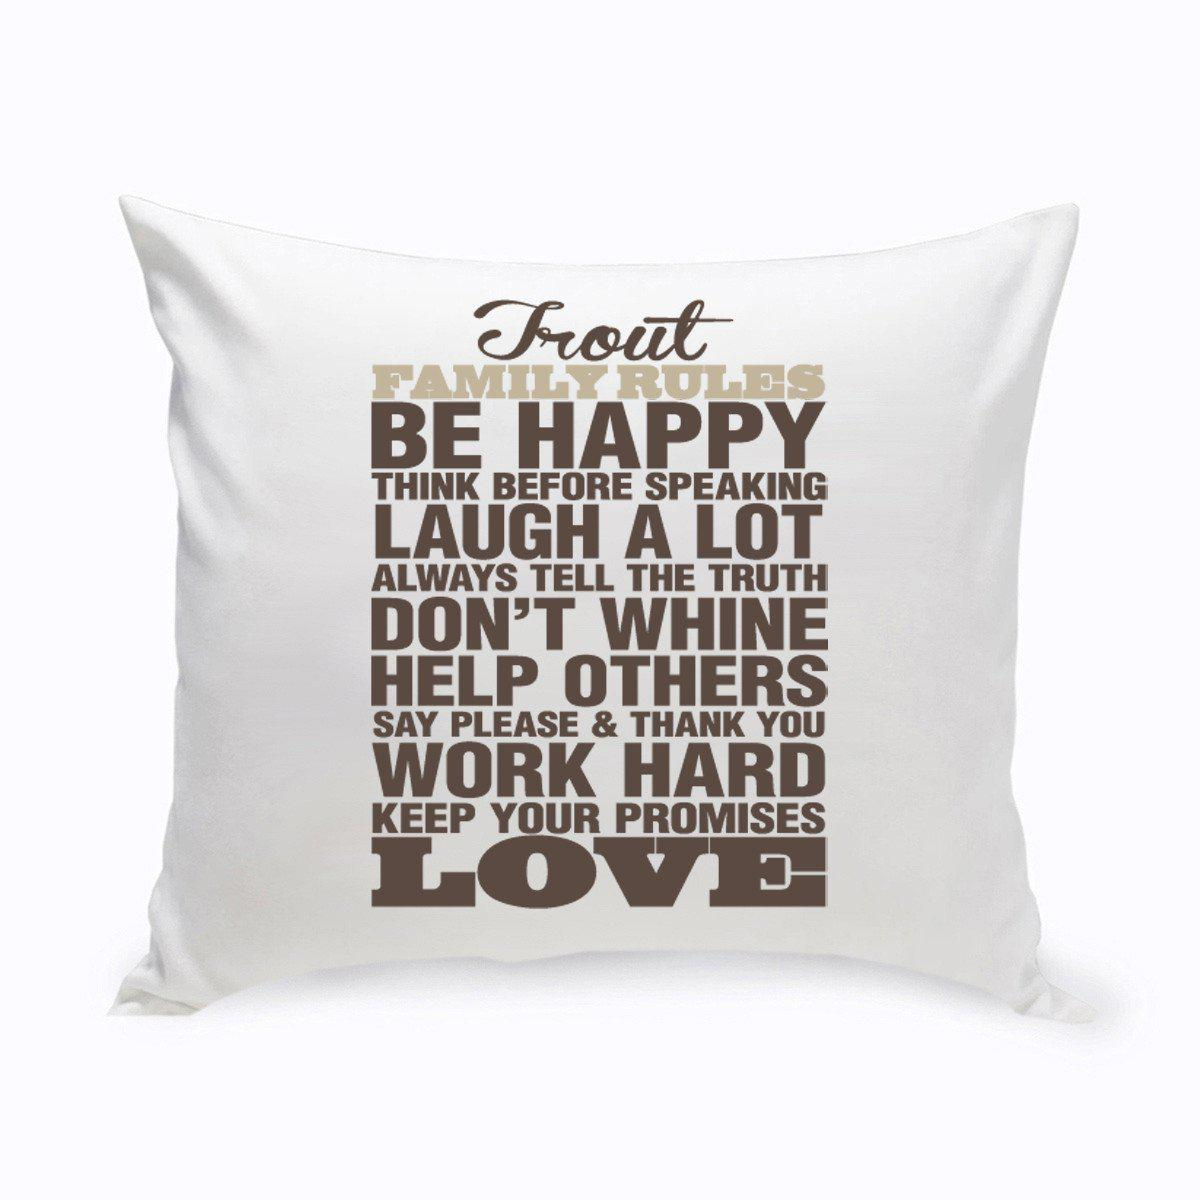 Personalized-Rustic-Family-Rules-Throw-Pillow